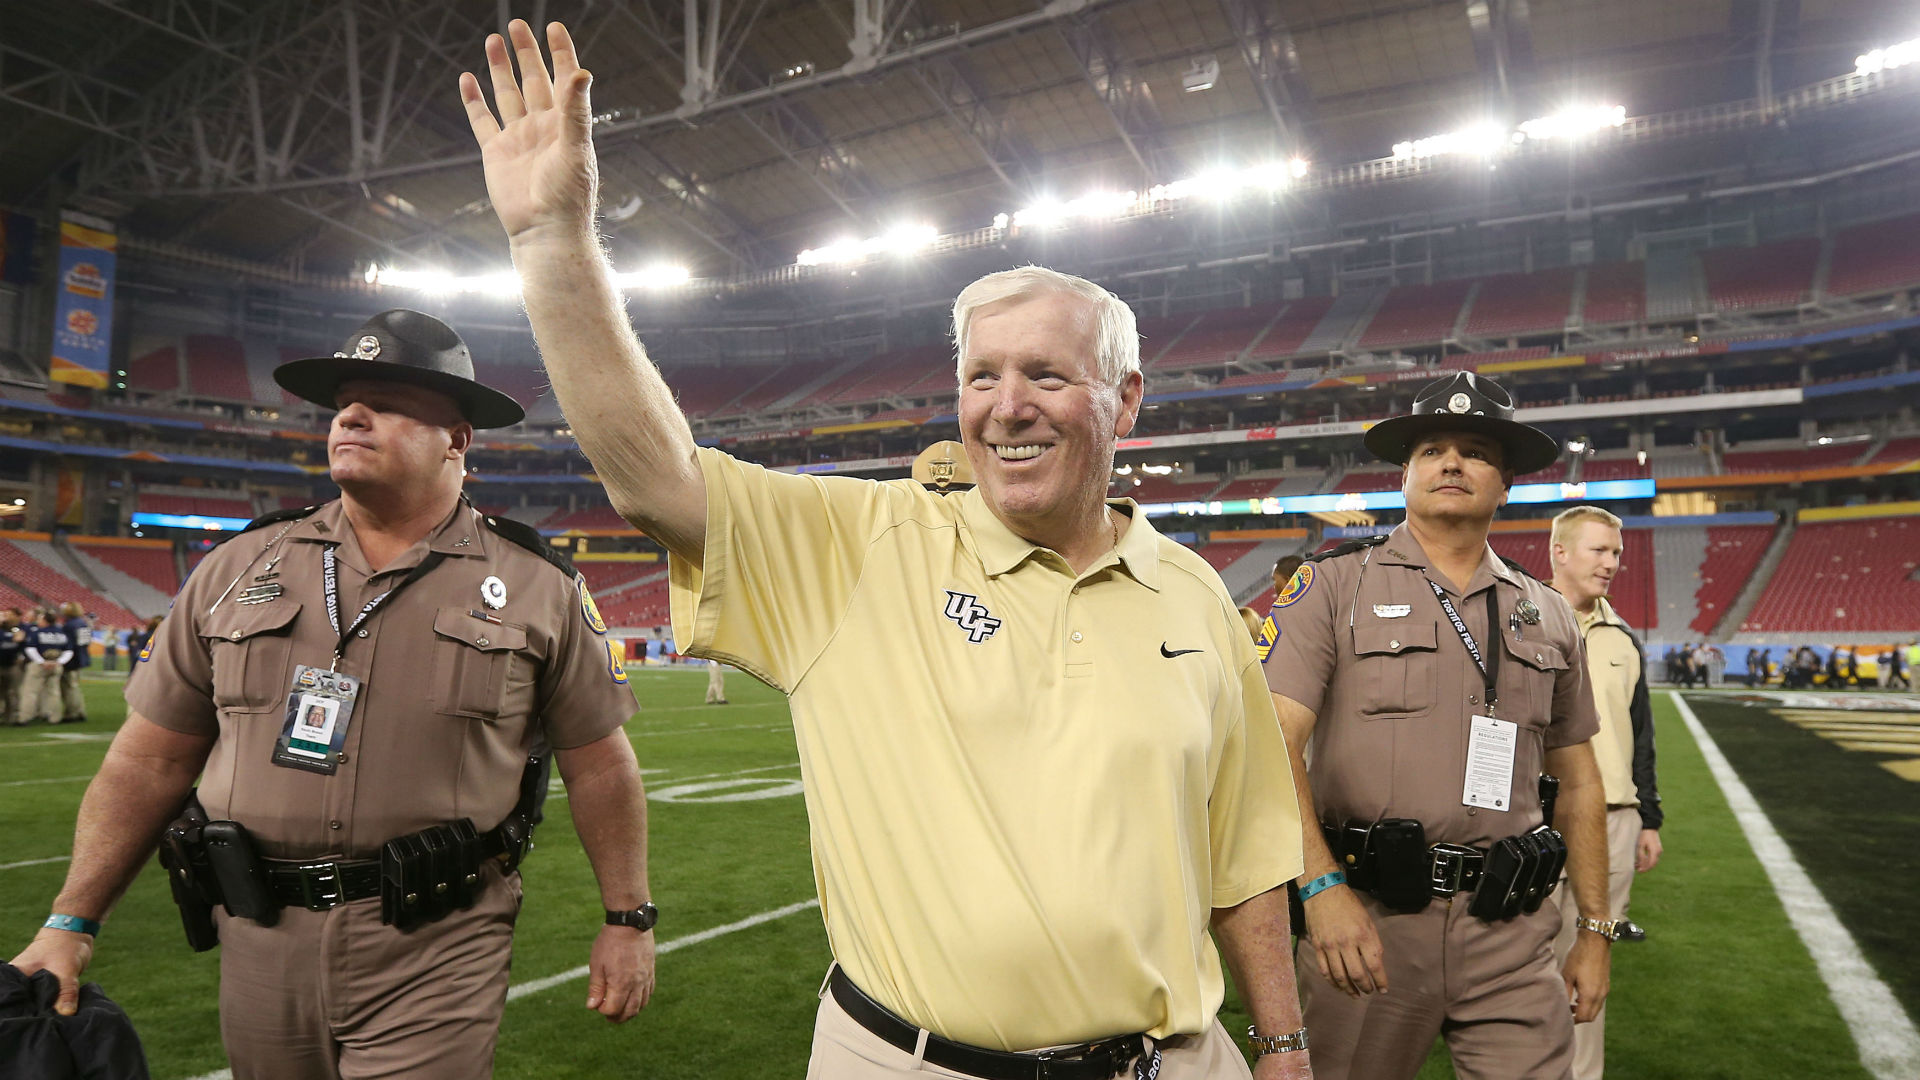 george o leary could step down as ucf coach after season report